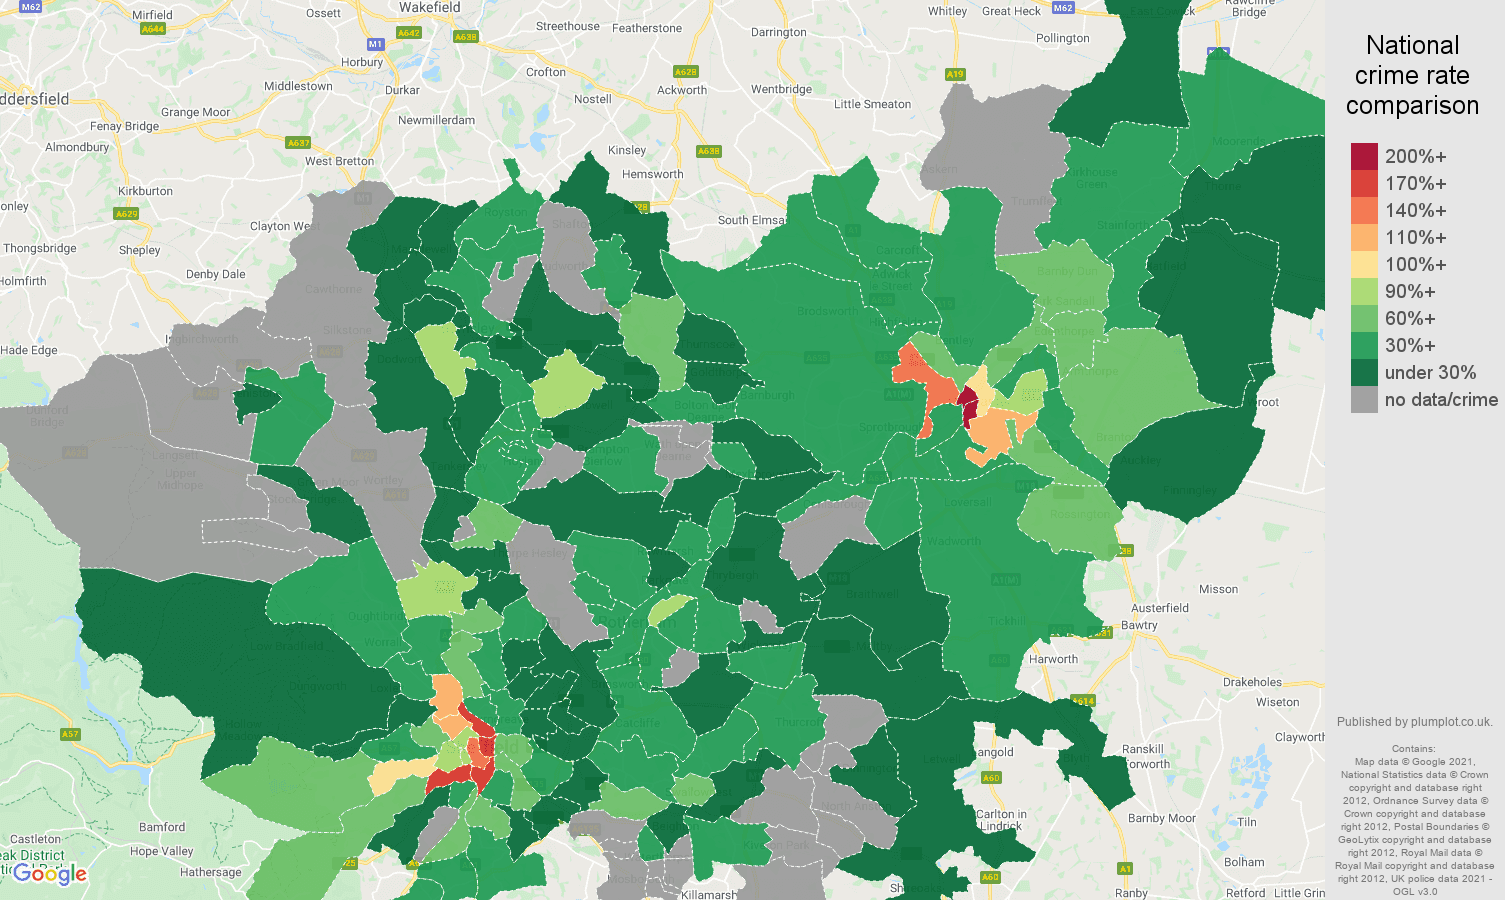 South Yorkshire bicycle theft crime rate comparison map